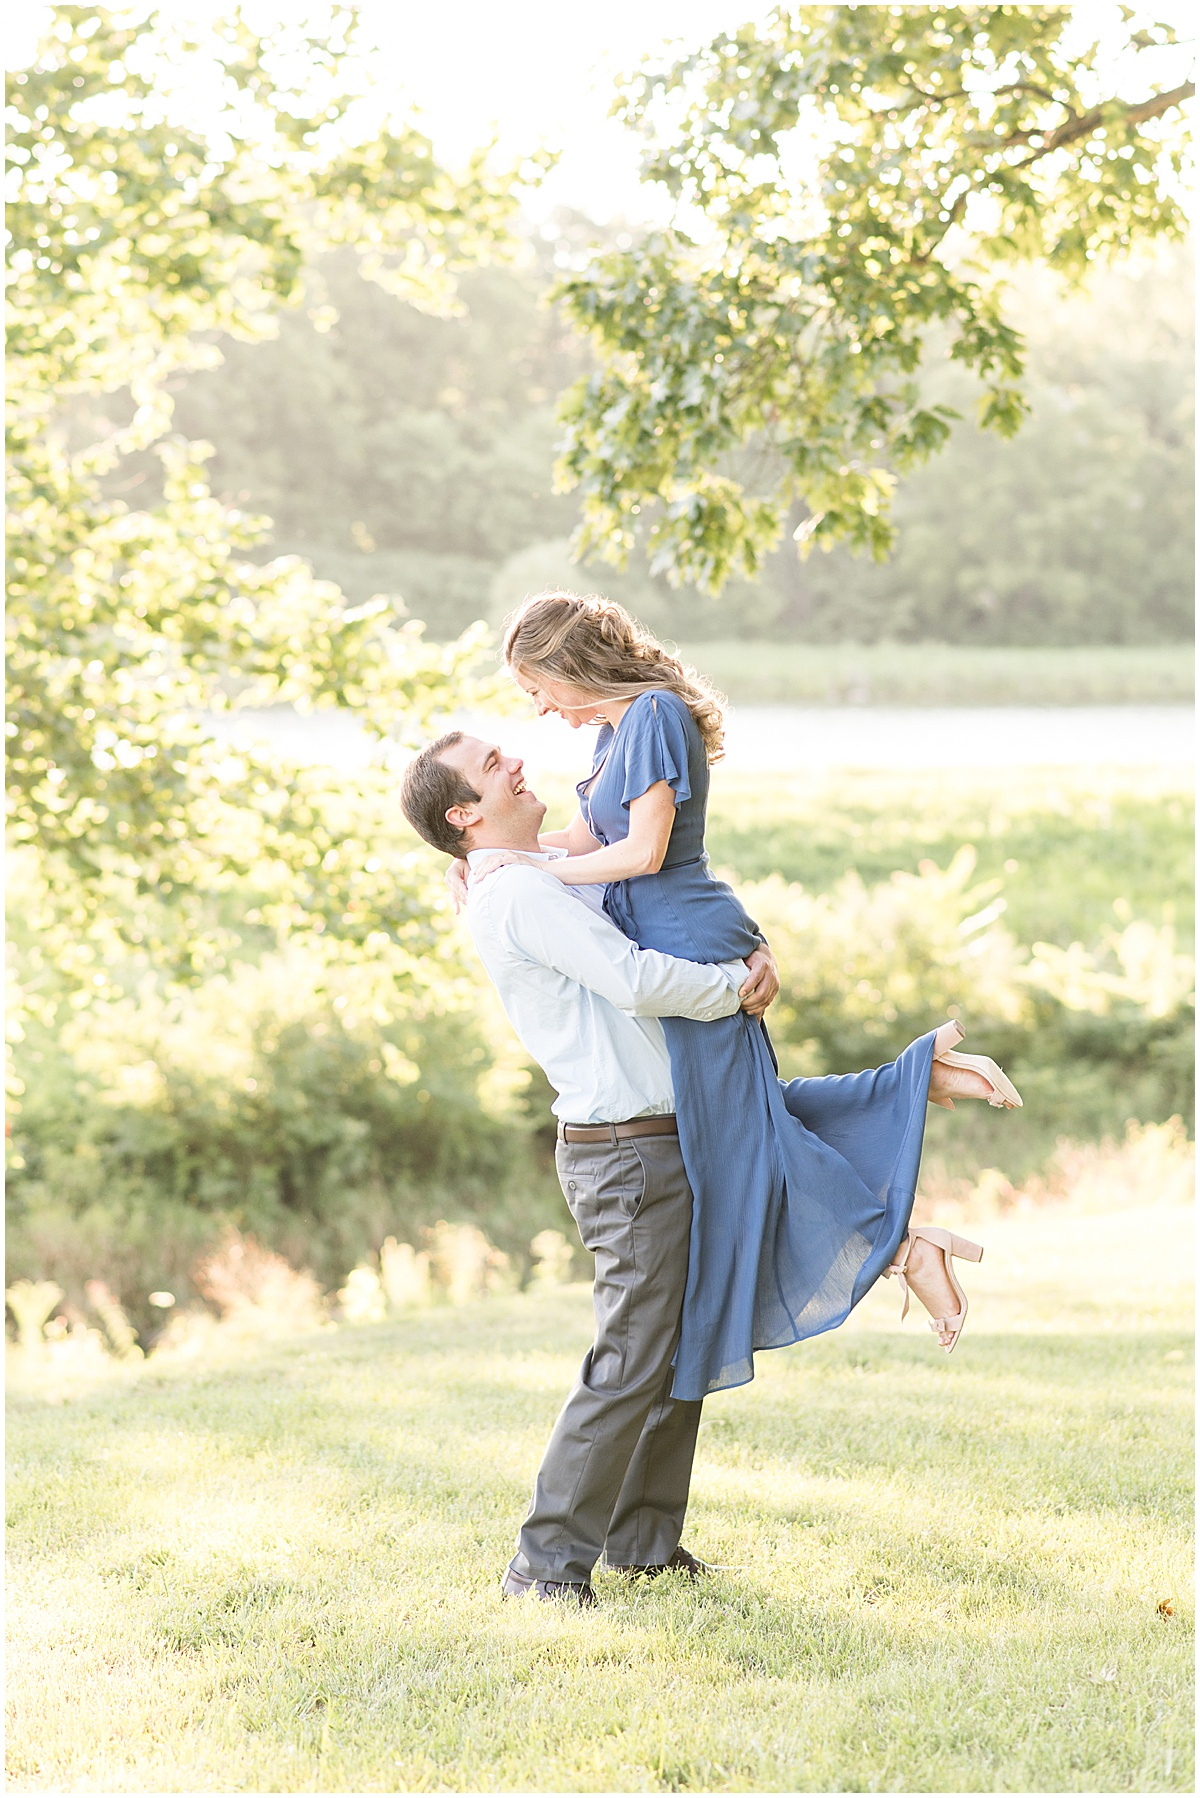 Future groom lifting future bride during Lakefront engagement photos in Lafayette, Indiana